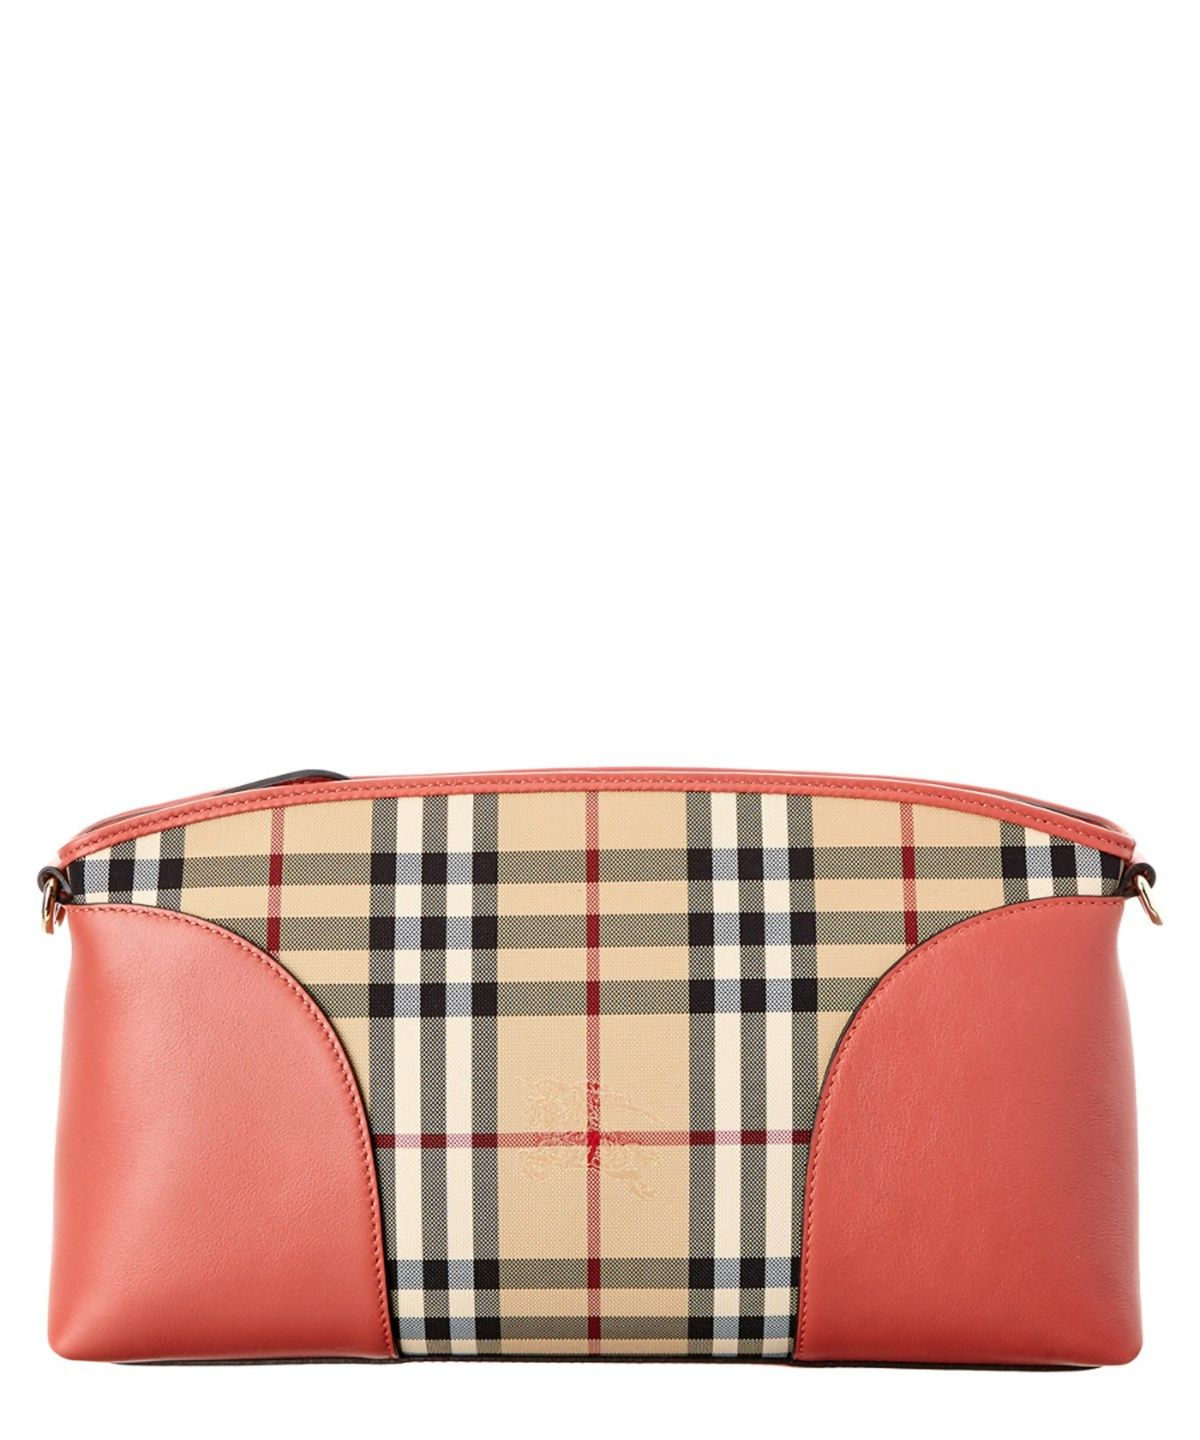 7d1b1c911311 BURBERRY Burberry Horseferry Check  Amp  Leather Clutch Bag .  burberry   bags  canvas  leather  clutch  shoulder bags  lining  hand bags